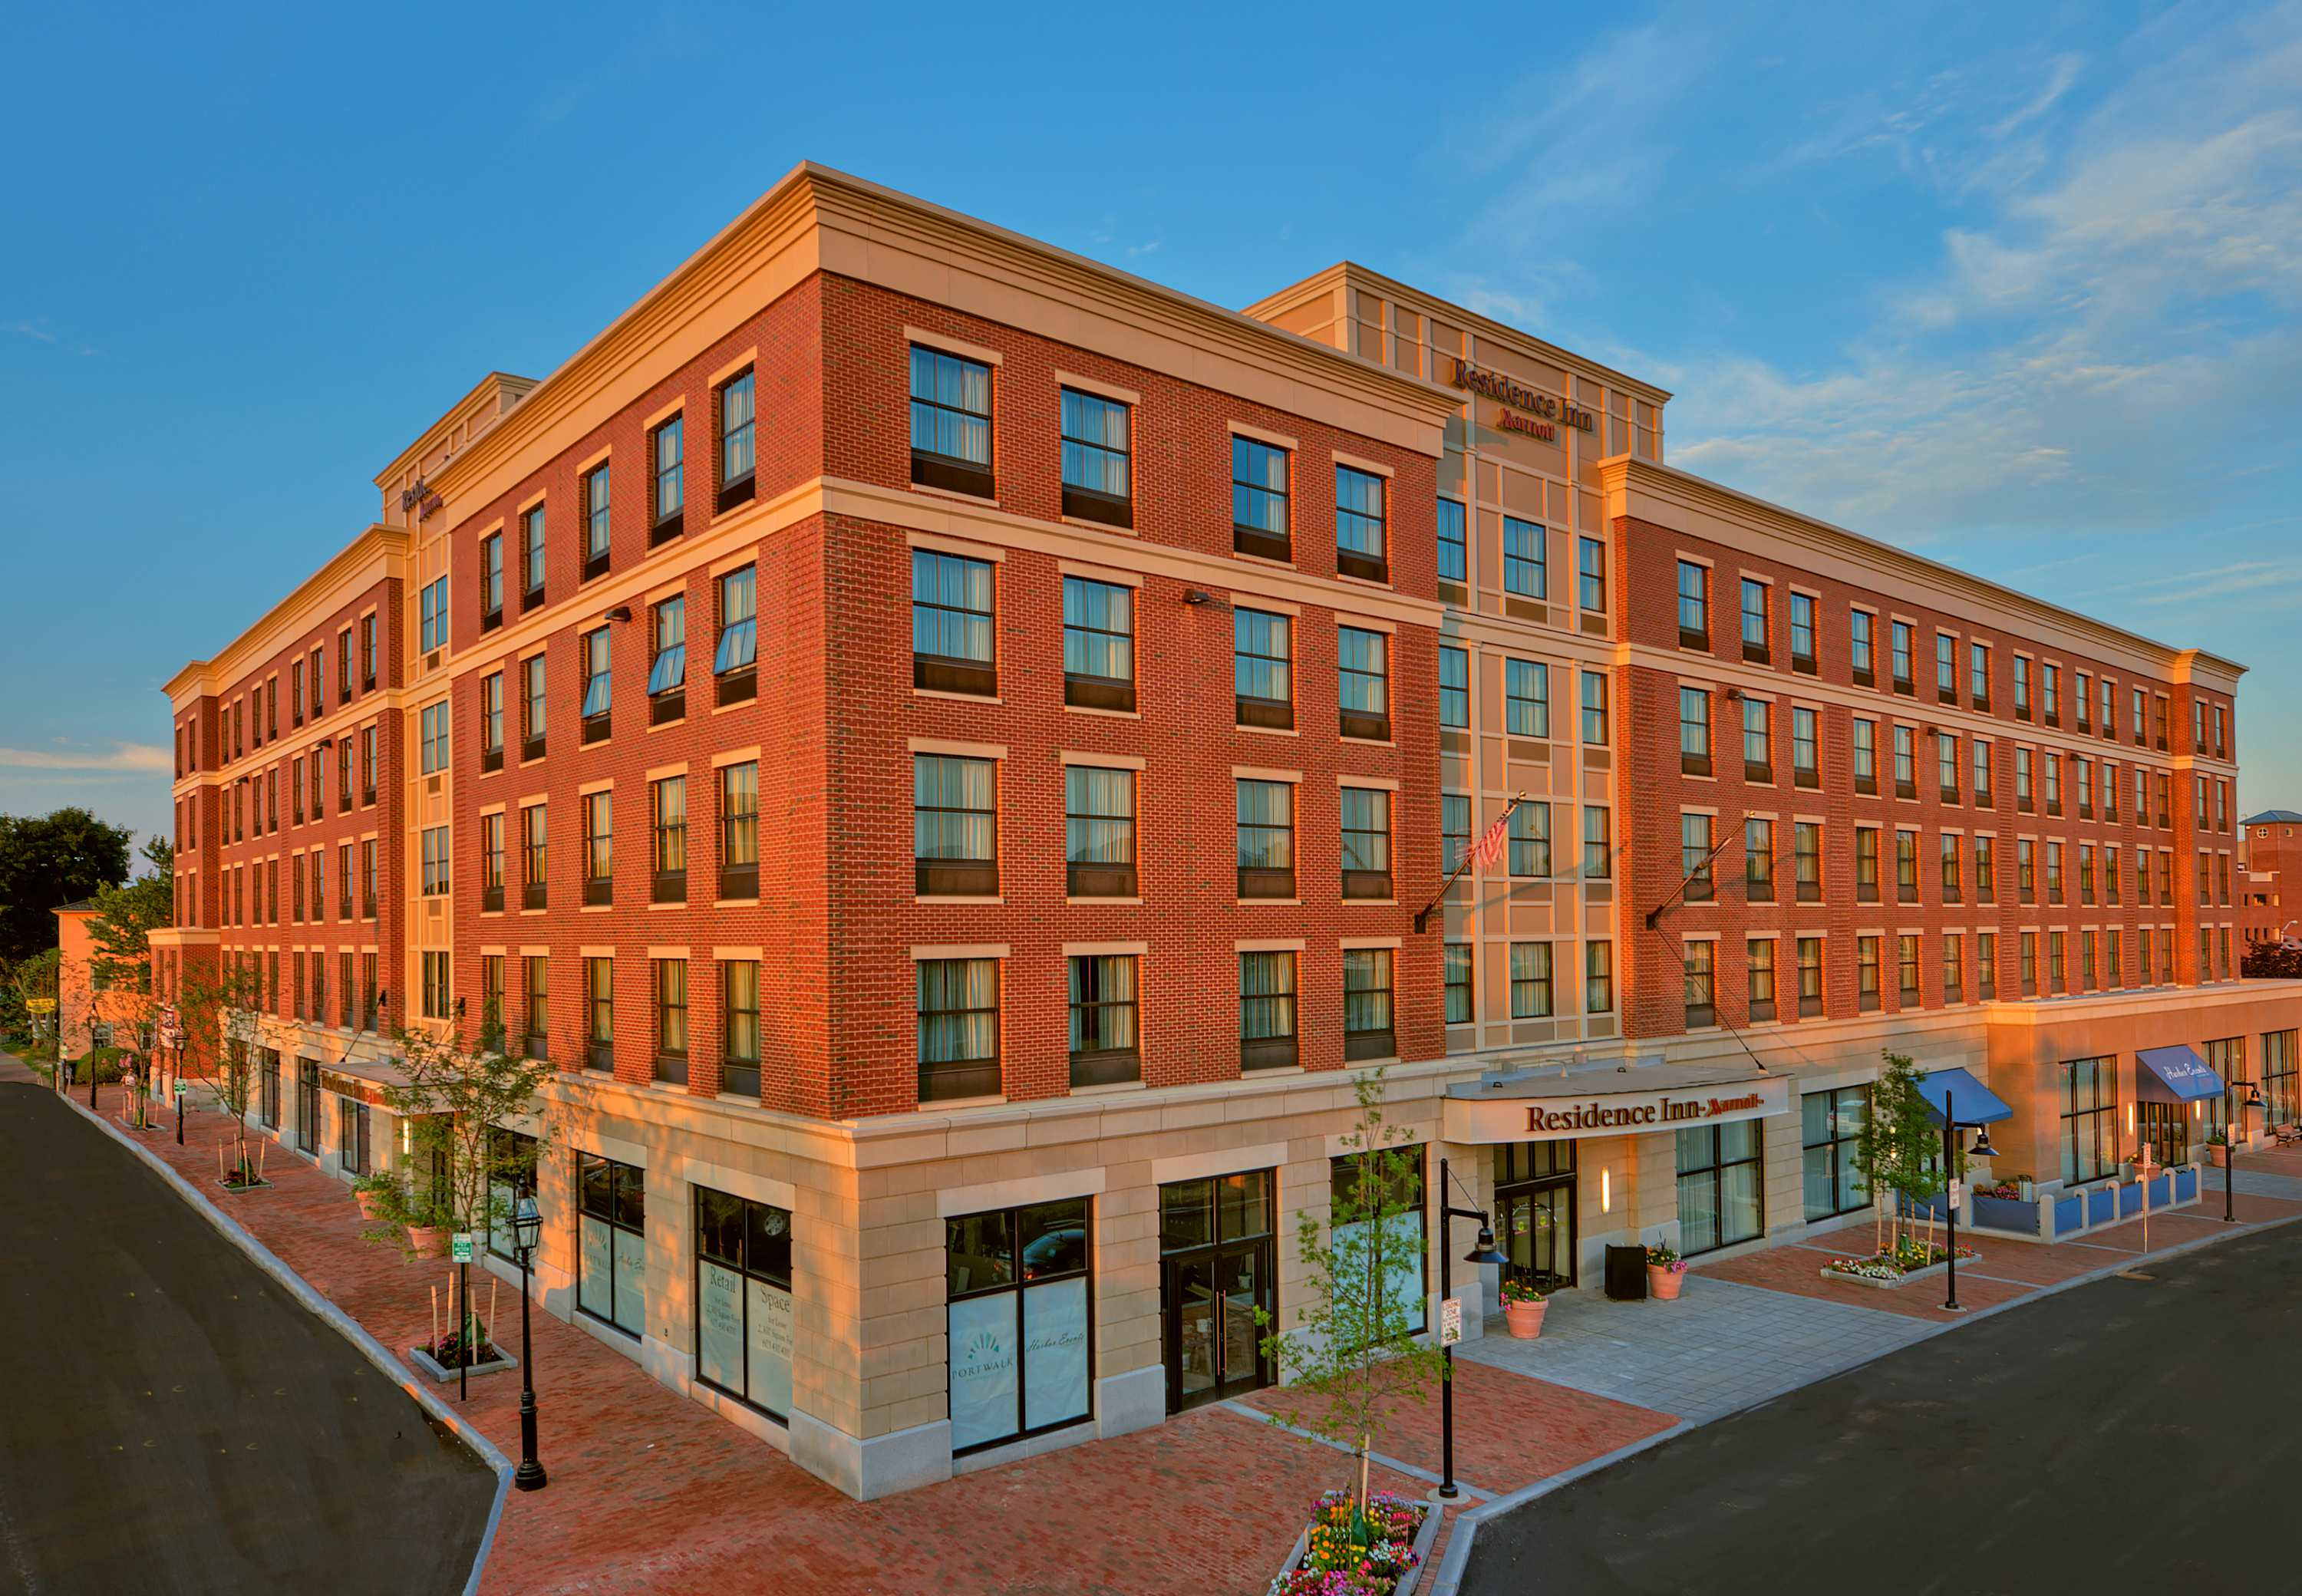 Residence Inn by Marriott Portsmouth Downtown/Waterfront image 0